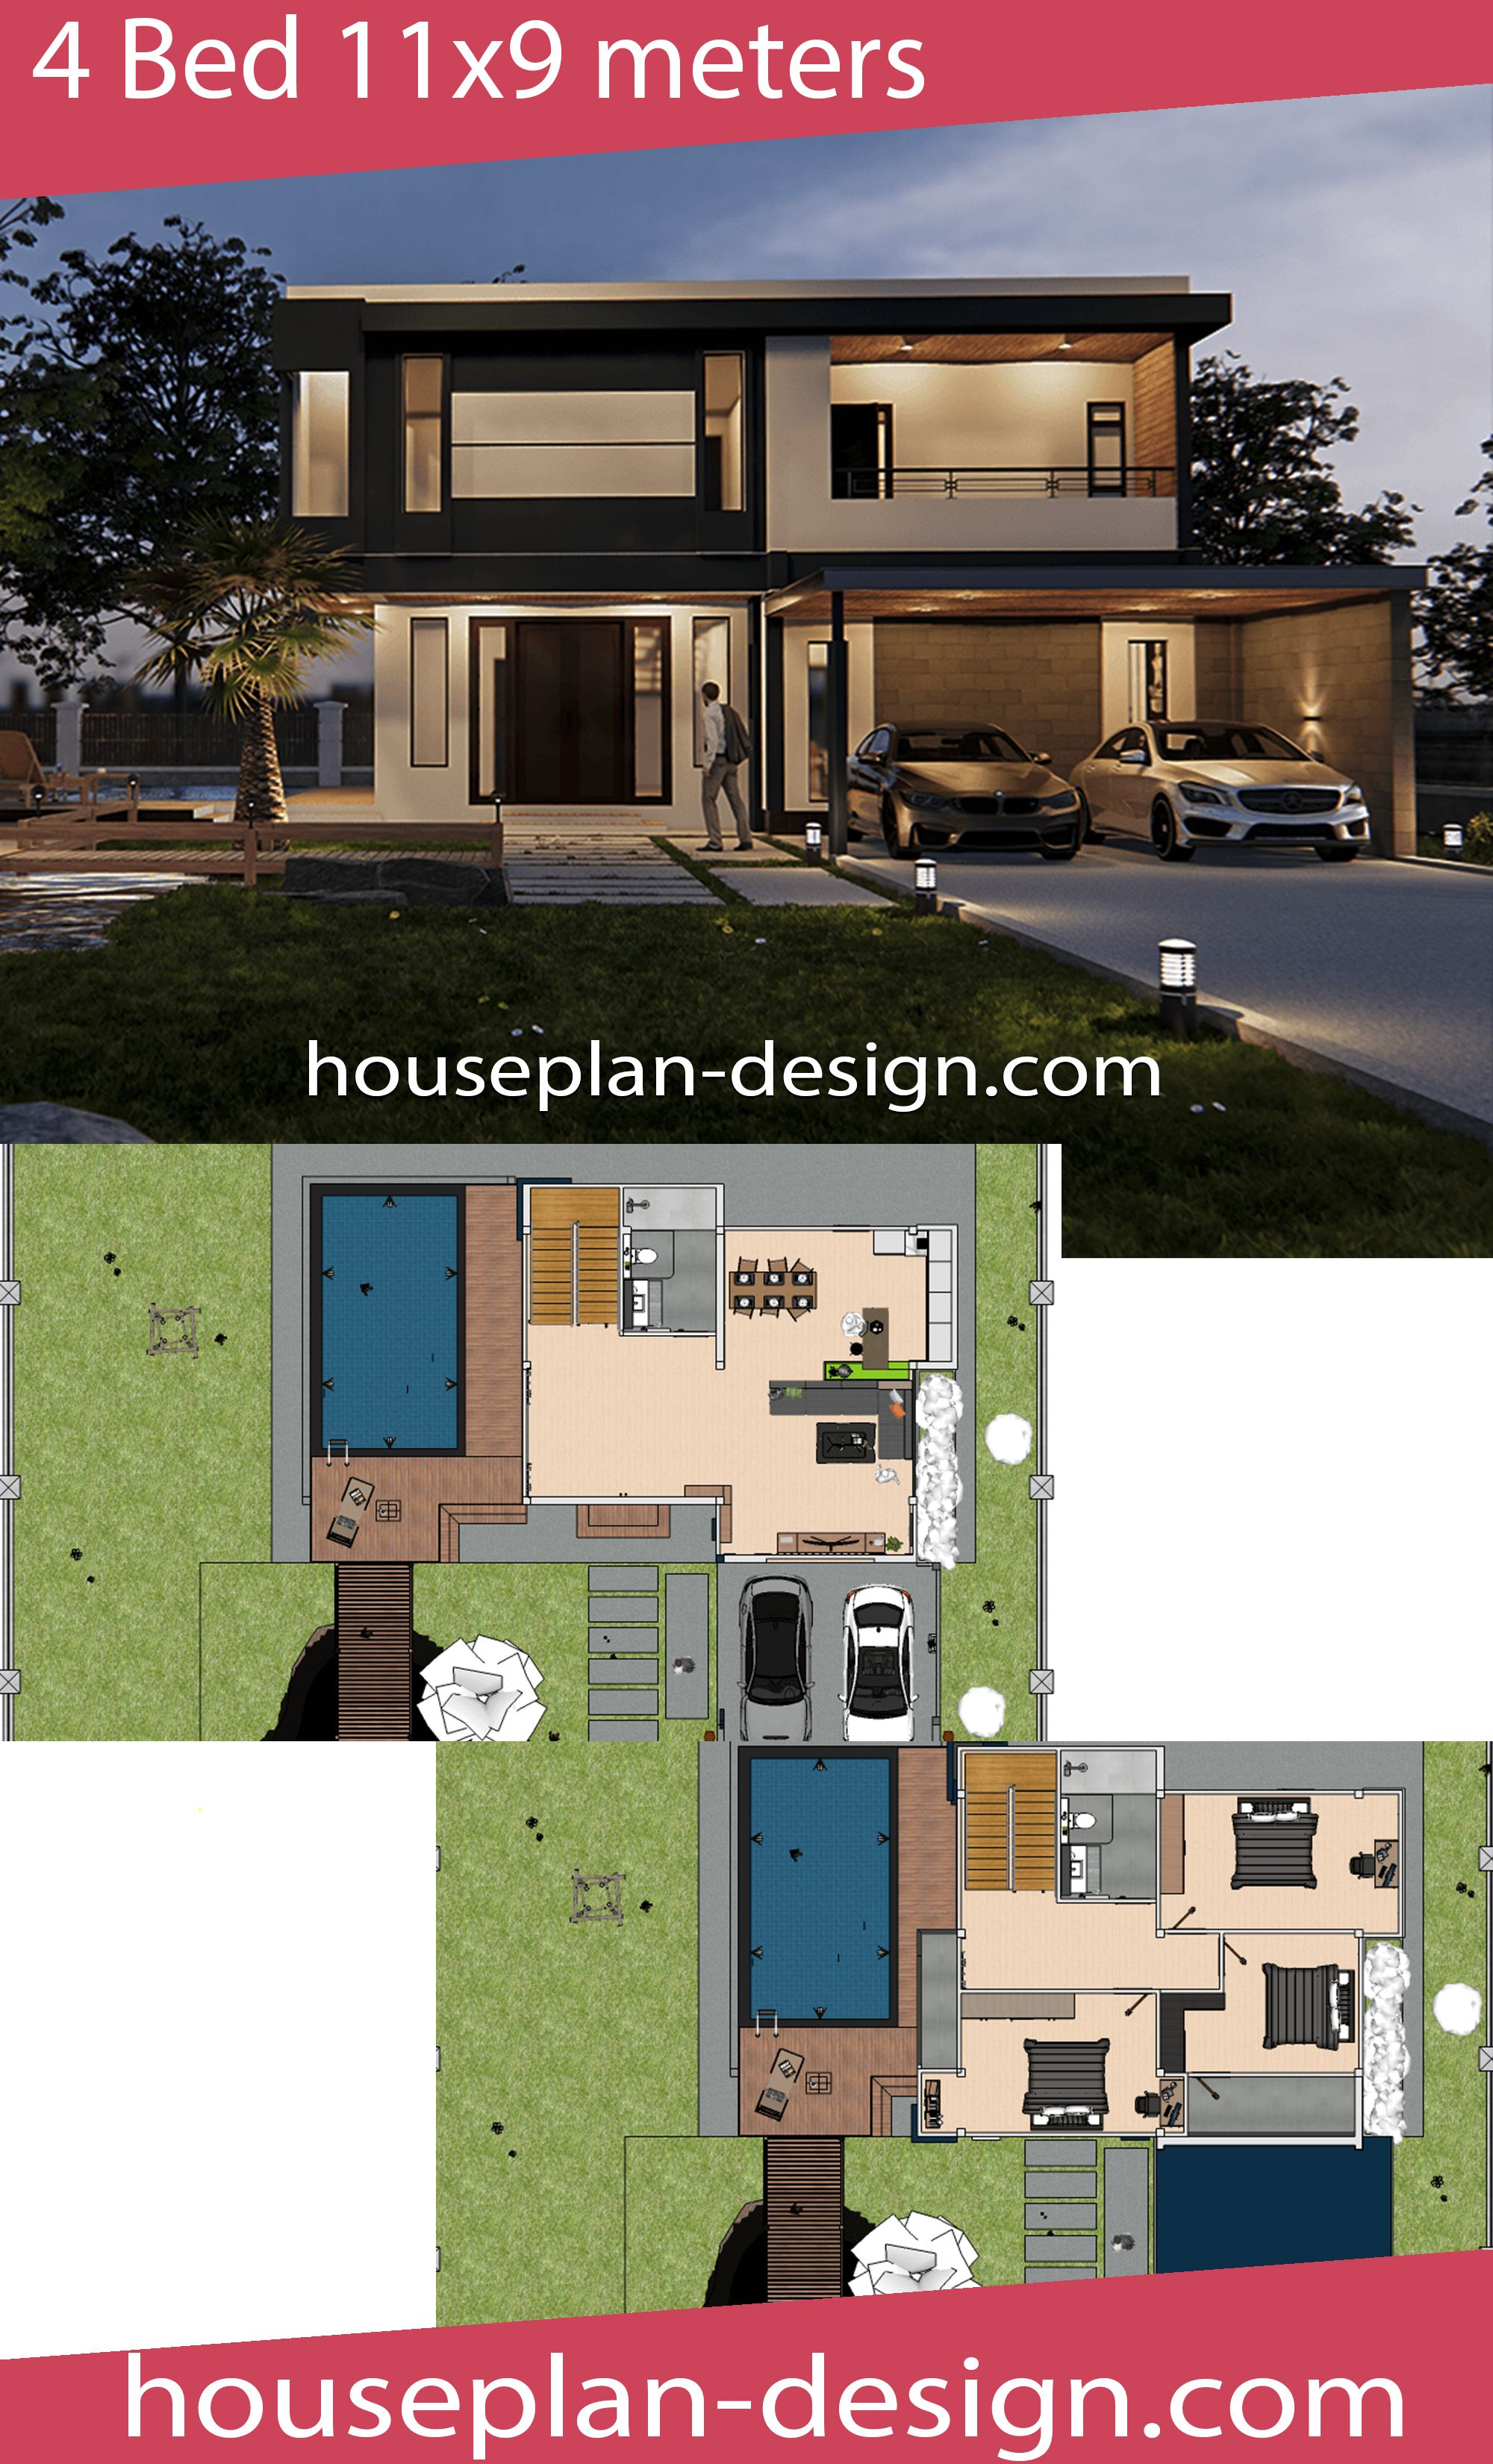 House Plan 11x9m With 3 Beds House Plan Design House Plans Home Design Plans Plan Design